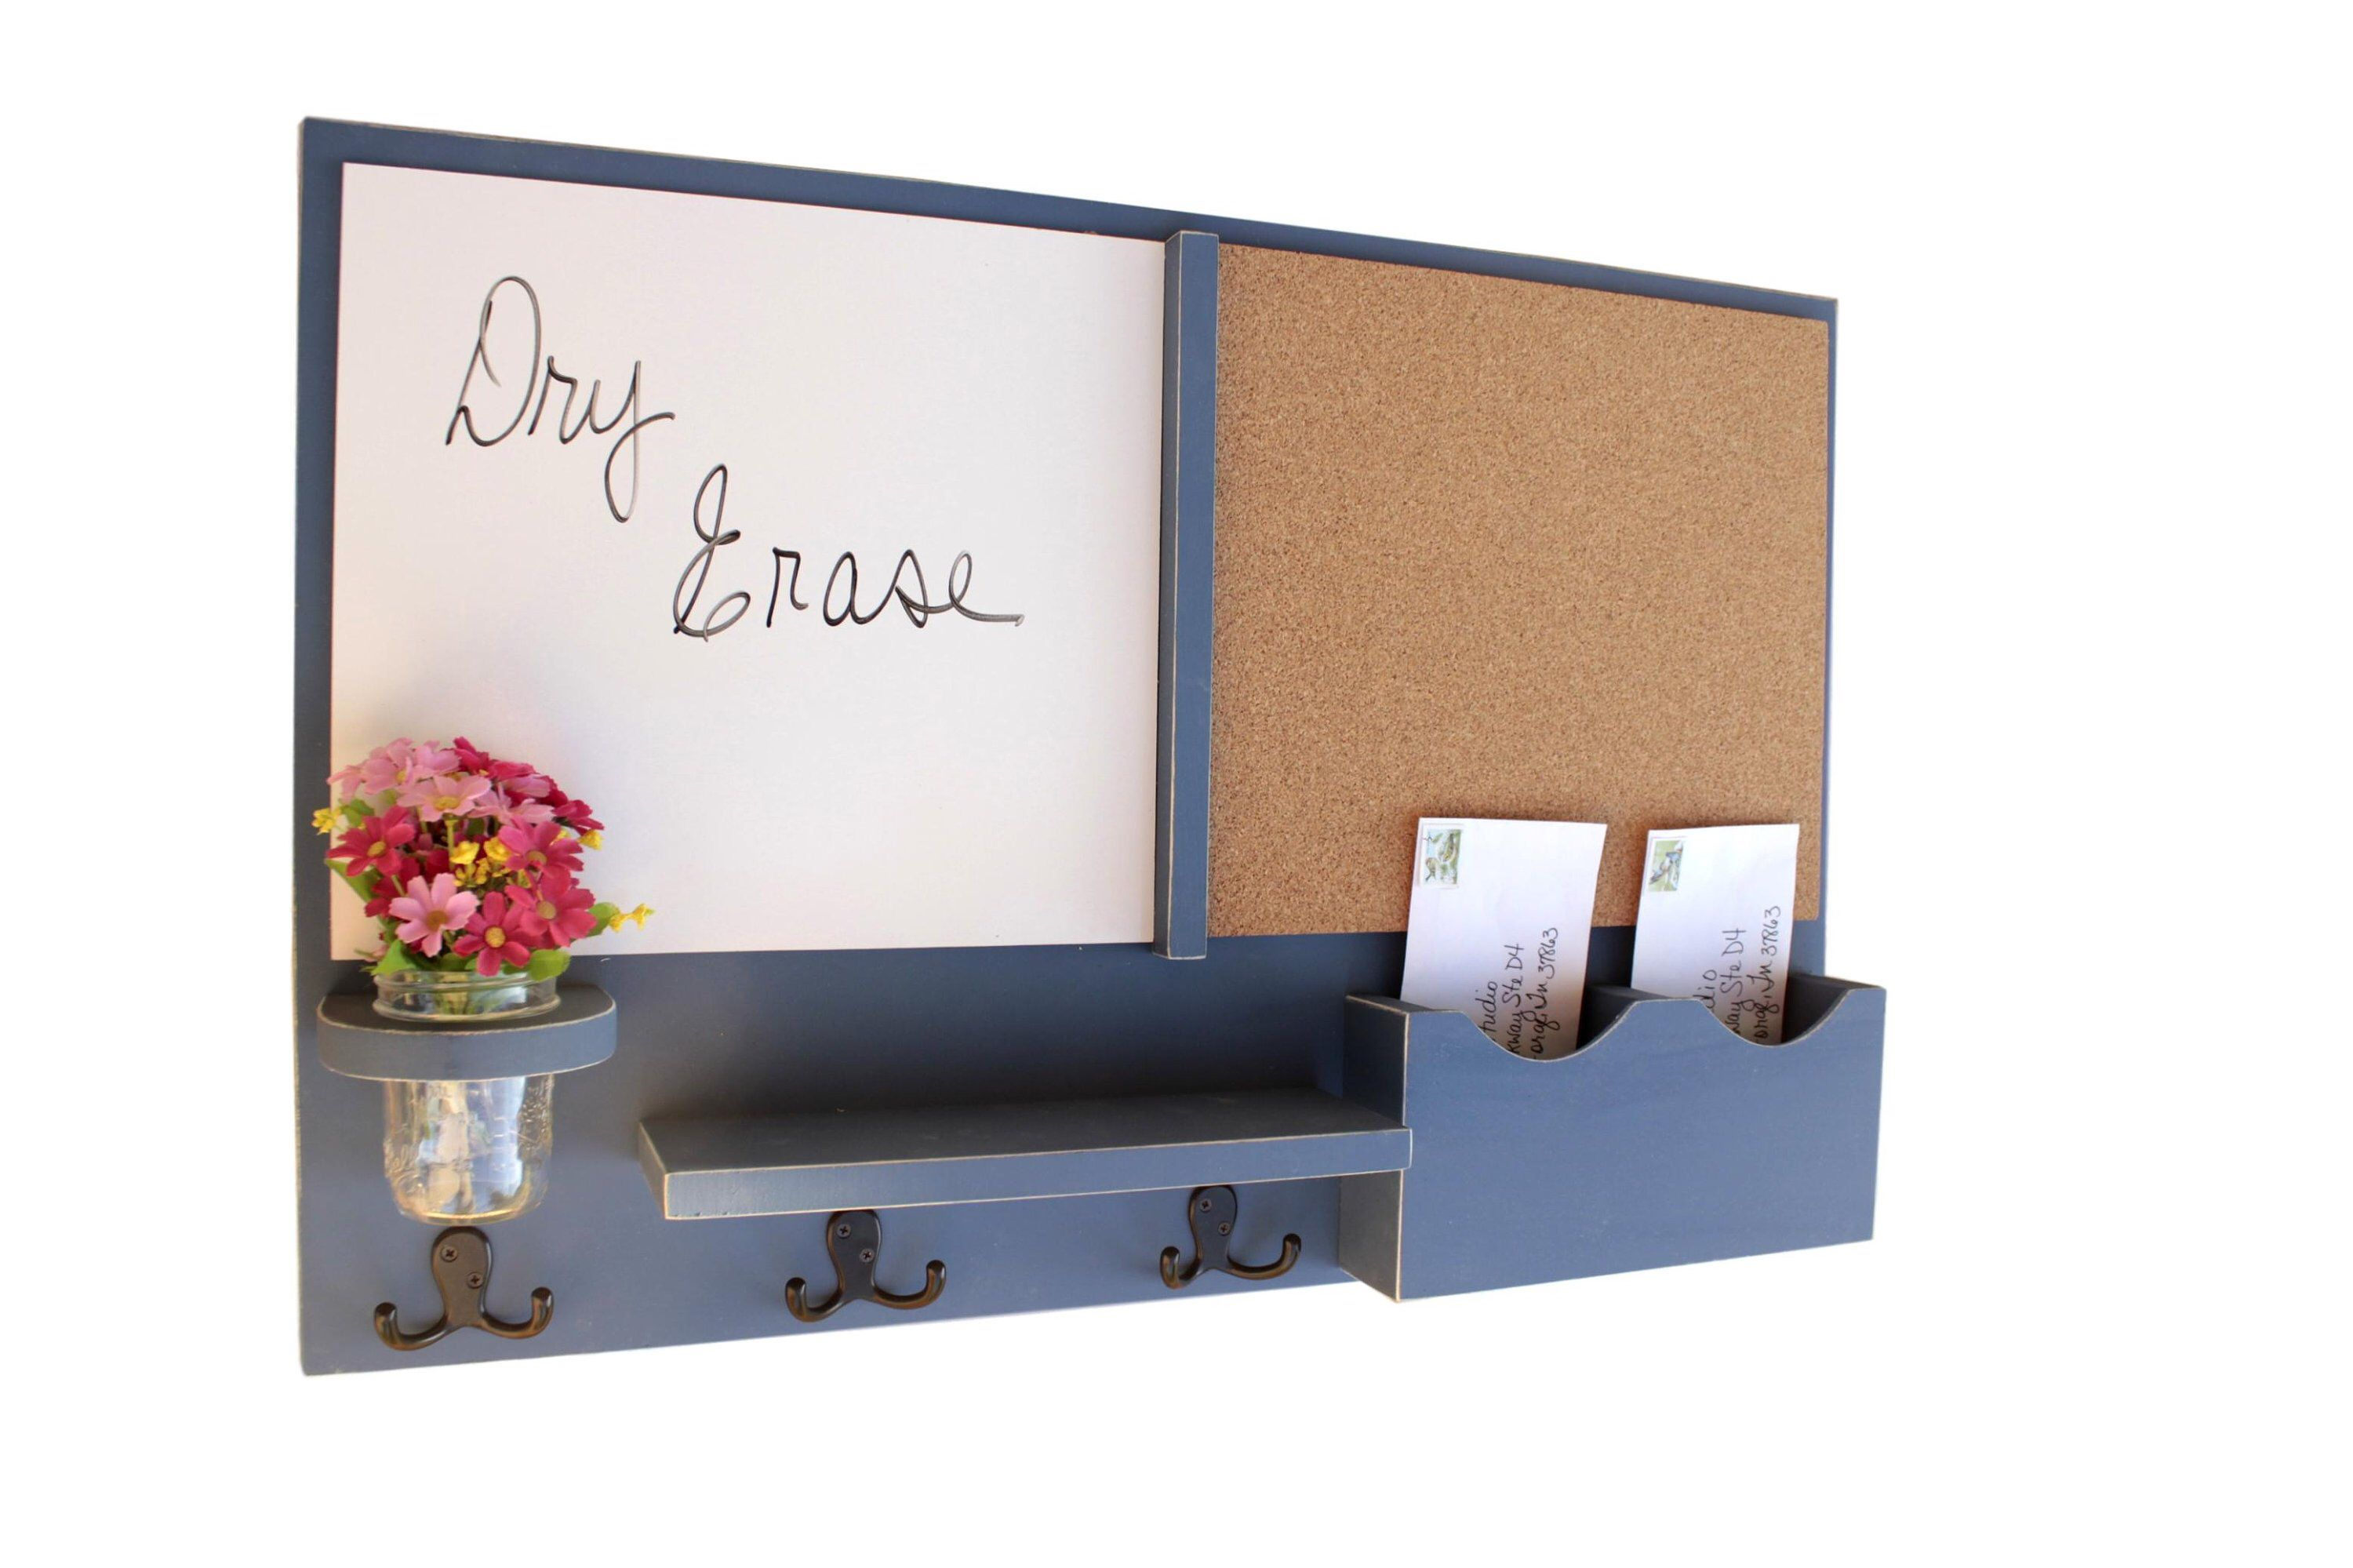 Mail organizer message center whiteboard dry erase board